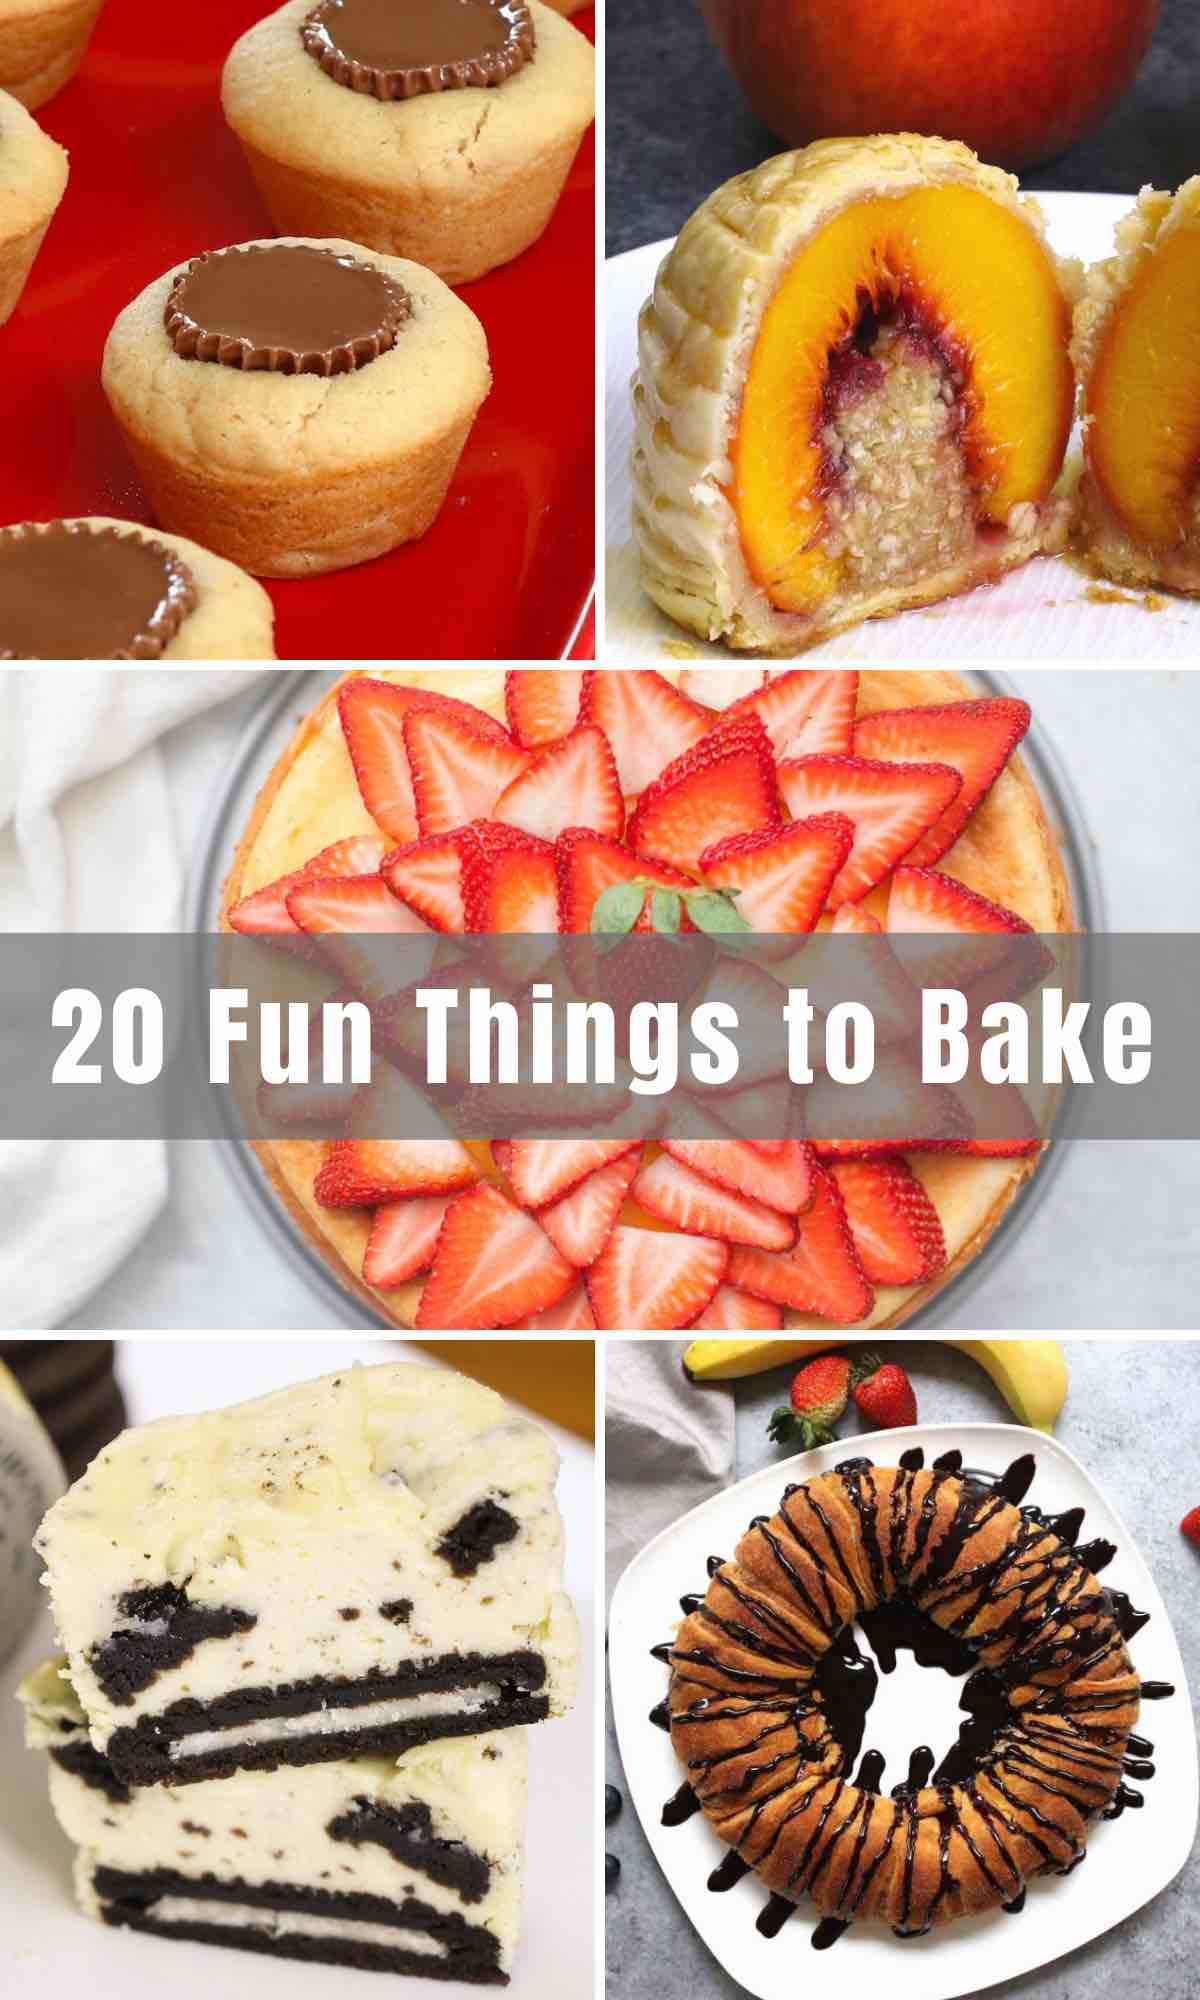 Whether you're a beginner baker or a pro, there comes a time when you look for some quick and easy sweet treats to satisfy your cravings. Below, you will find 20 Fun Things to Bake, especially when you're bored! These desserts are easy, quick and some only require a couple of ingredients. The best part? You'll get to enjoy anything you make, right away!